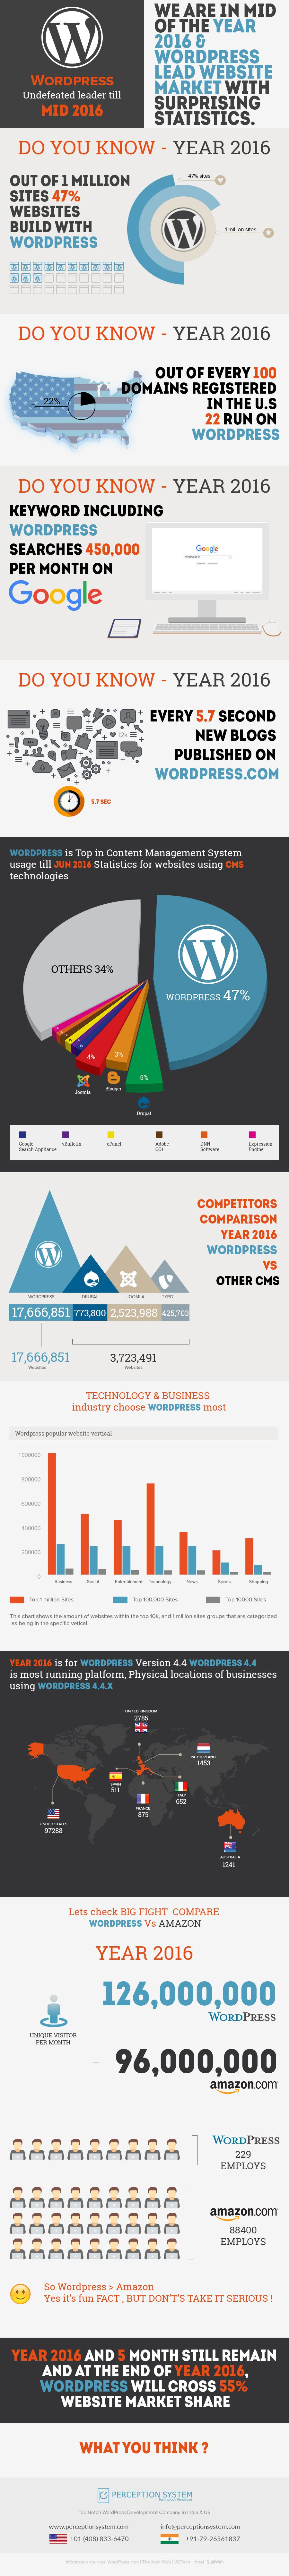 Popularity of Wordpress CMS in 2016 with Surprising Statistics